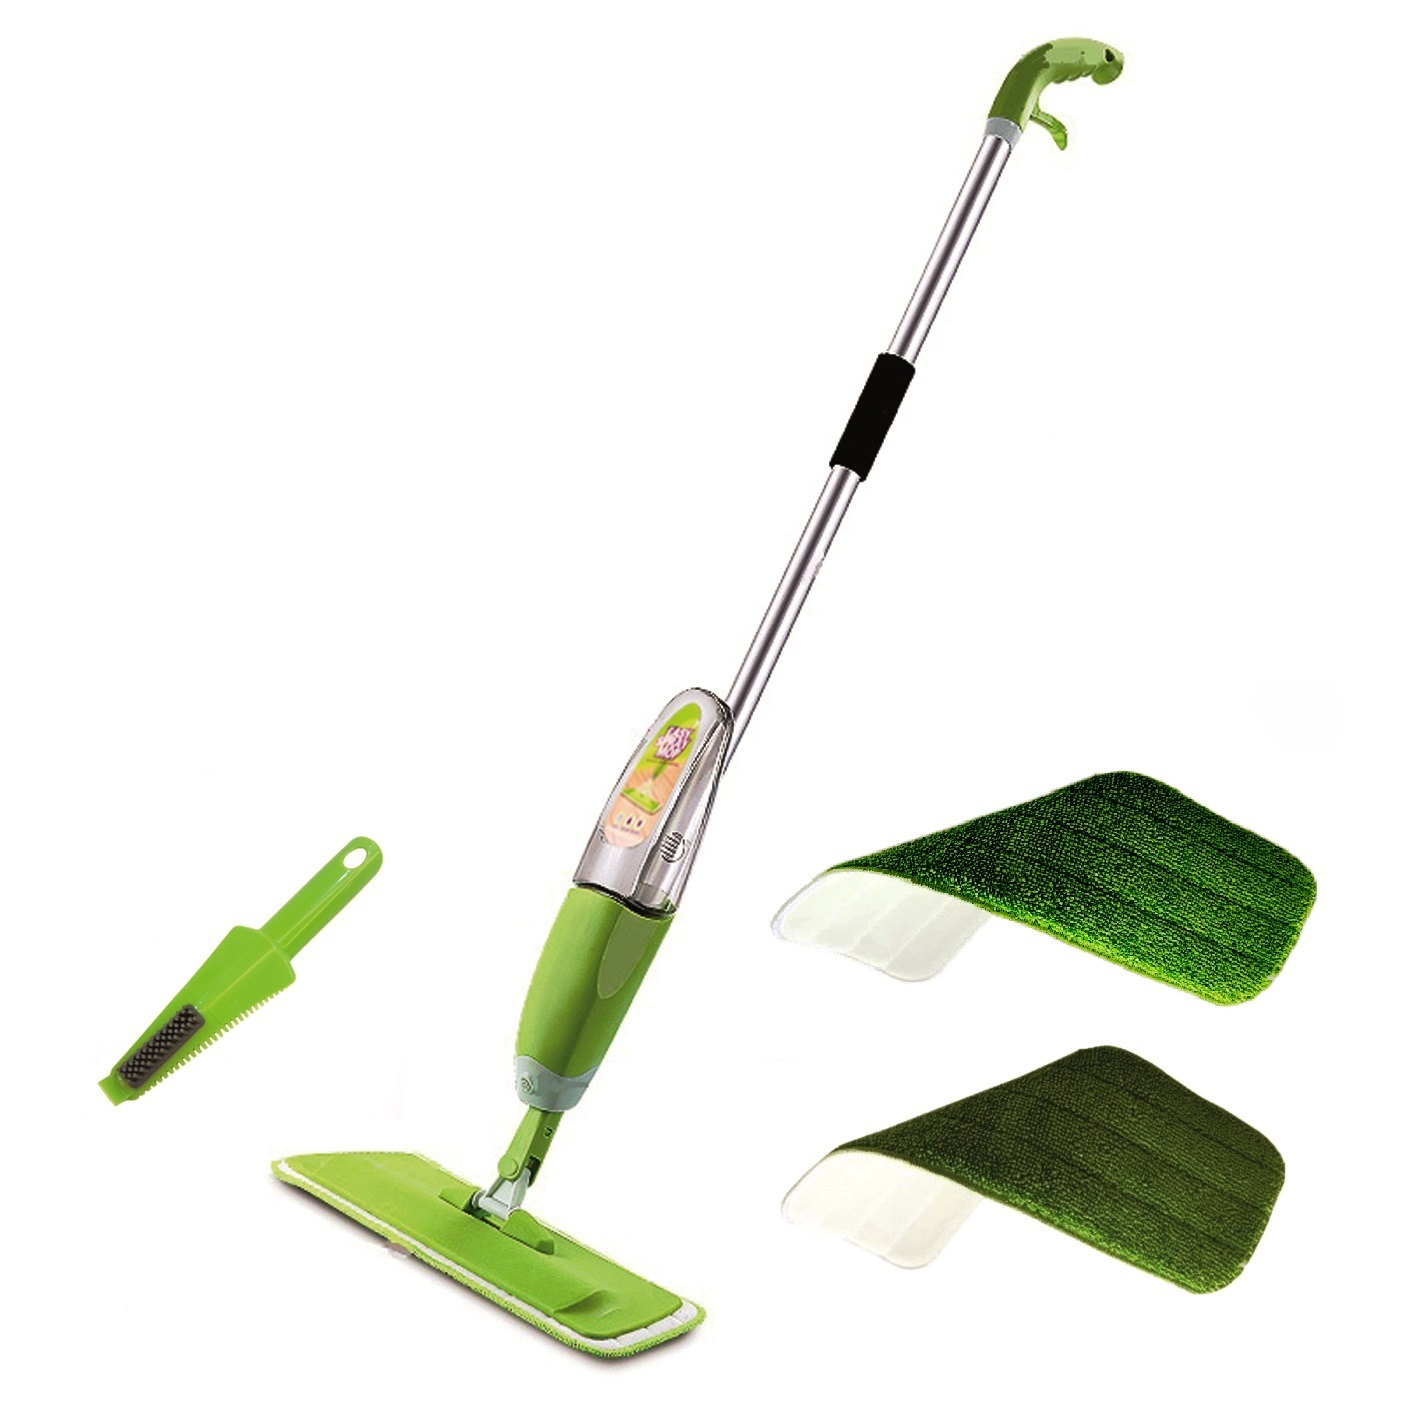 WYL-09 green W brush n 2cloth.jpg